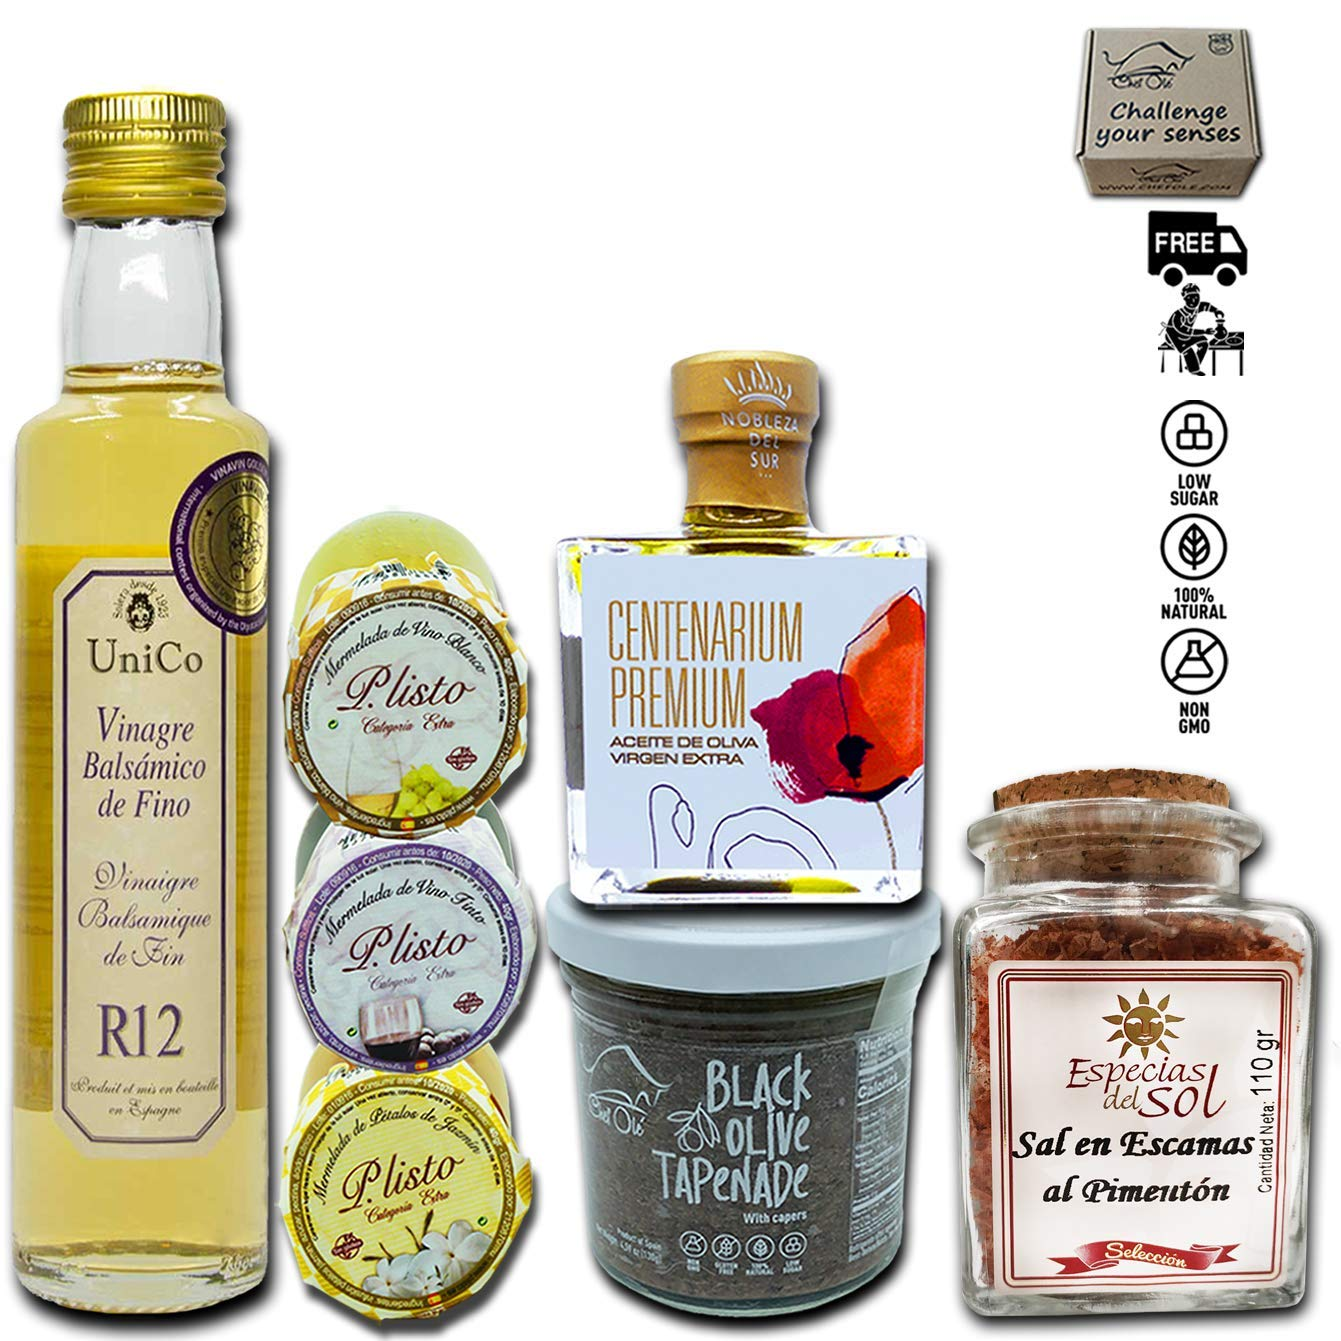 CHEF OLE MASTER GOURMET GIFT BASKET. TIME TO RAISE YOUR COOKING TO A NEW LEVEL.CHEESE PAIRING-SNACKING.IMPORTED FROM SPAIN THE COUNTRY WITH 190 MICHELIN STARS. PERFECT FOR ANY OCCASION.MIRO FOOD BOX.